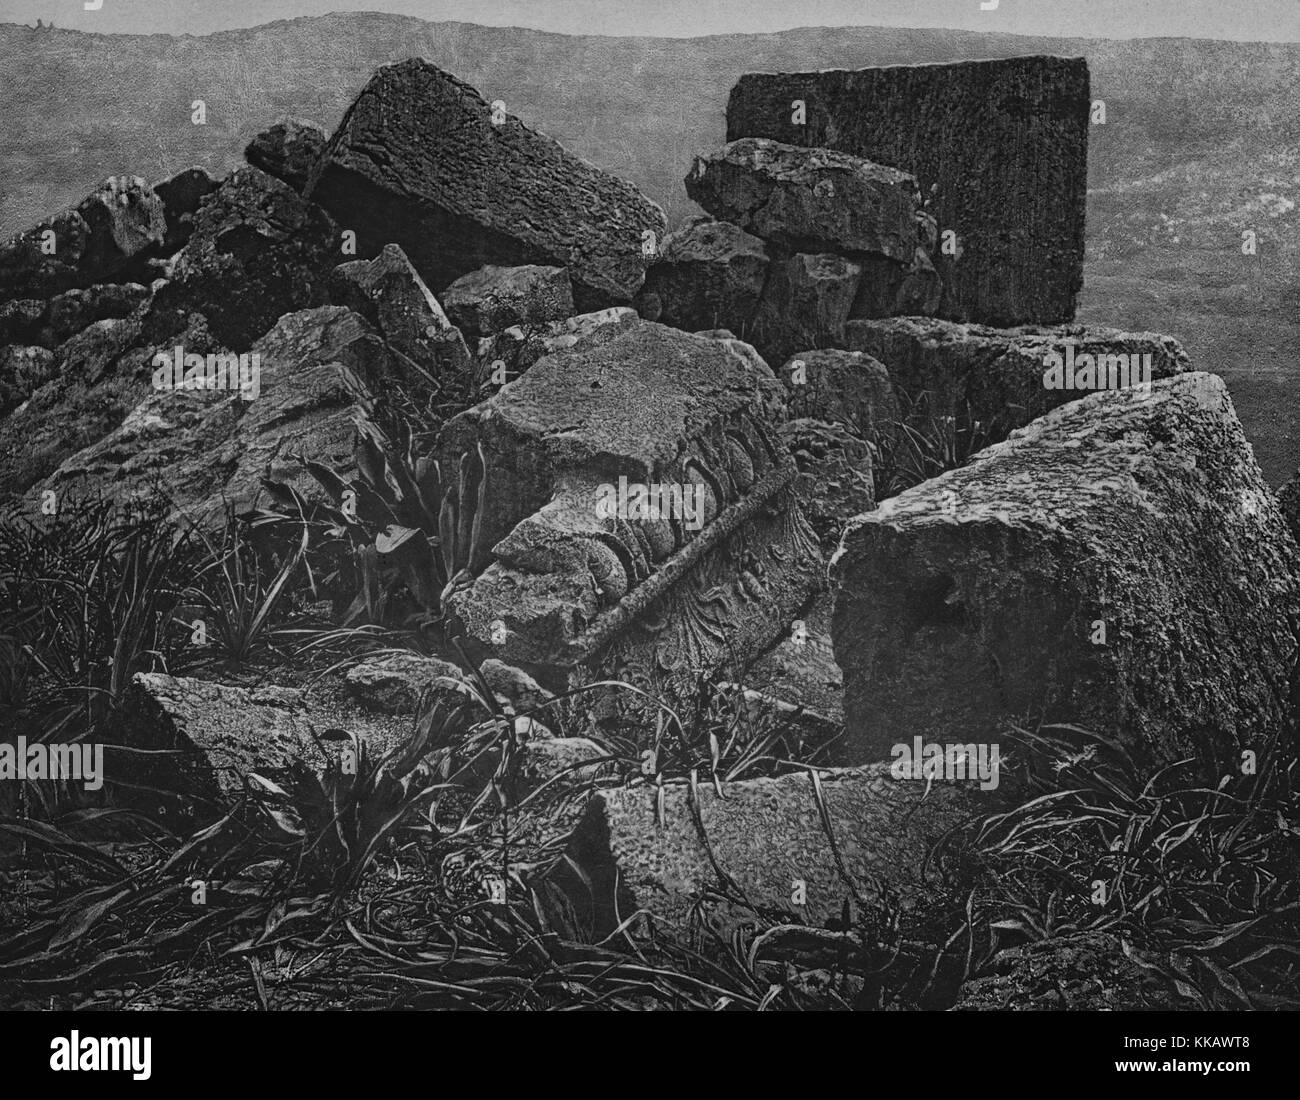 A pile of rubble in the ruins near Araq El-Emir, Qasr al-Abd is a large palace that stands nearby, Jordan, 1874. - Stock Image